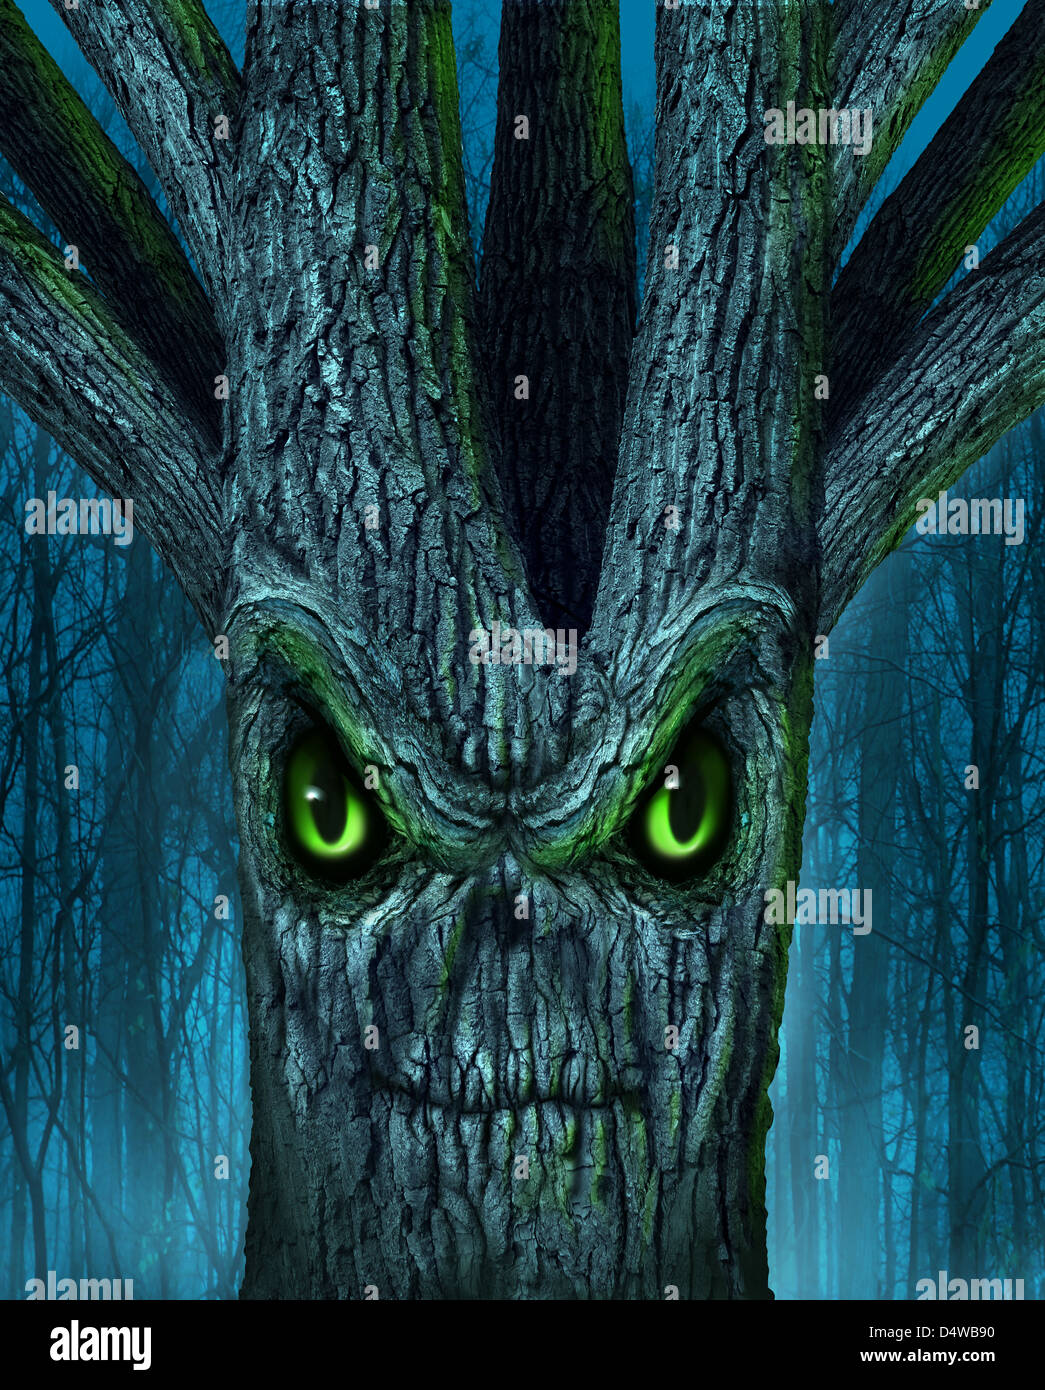 Haunted tree with a mythical dark forest and an evil plant shaped as a demon spirit skull face as a halloween or - Stock Image